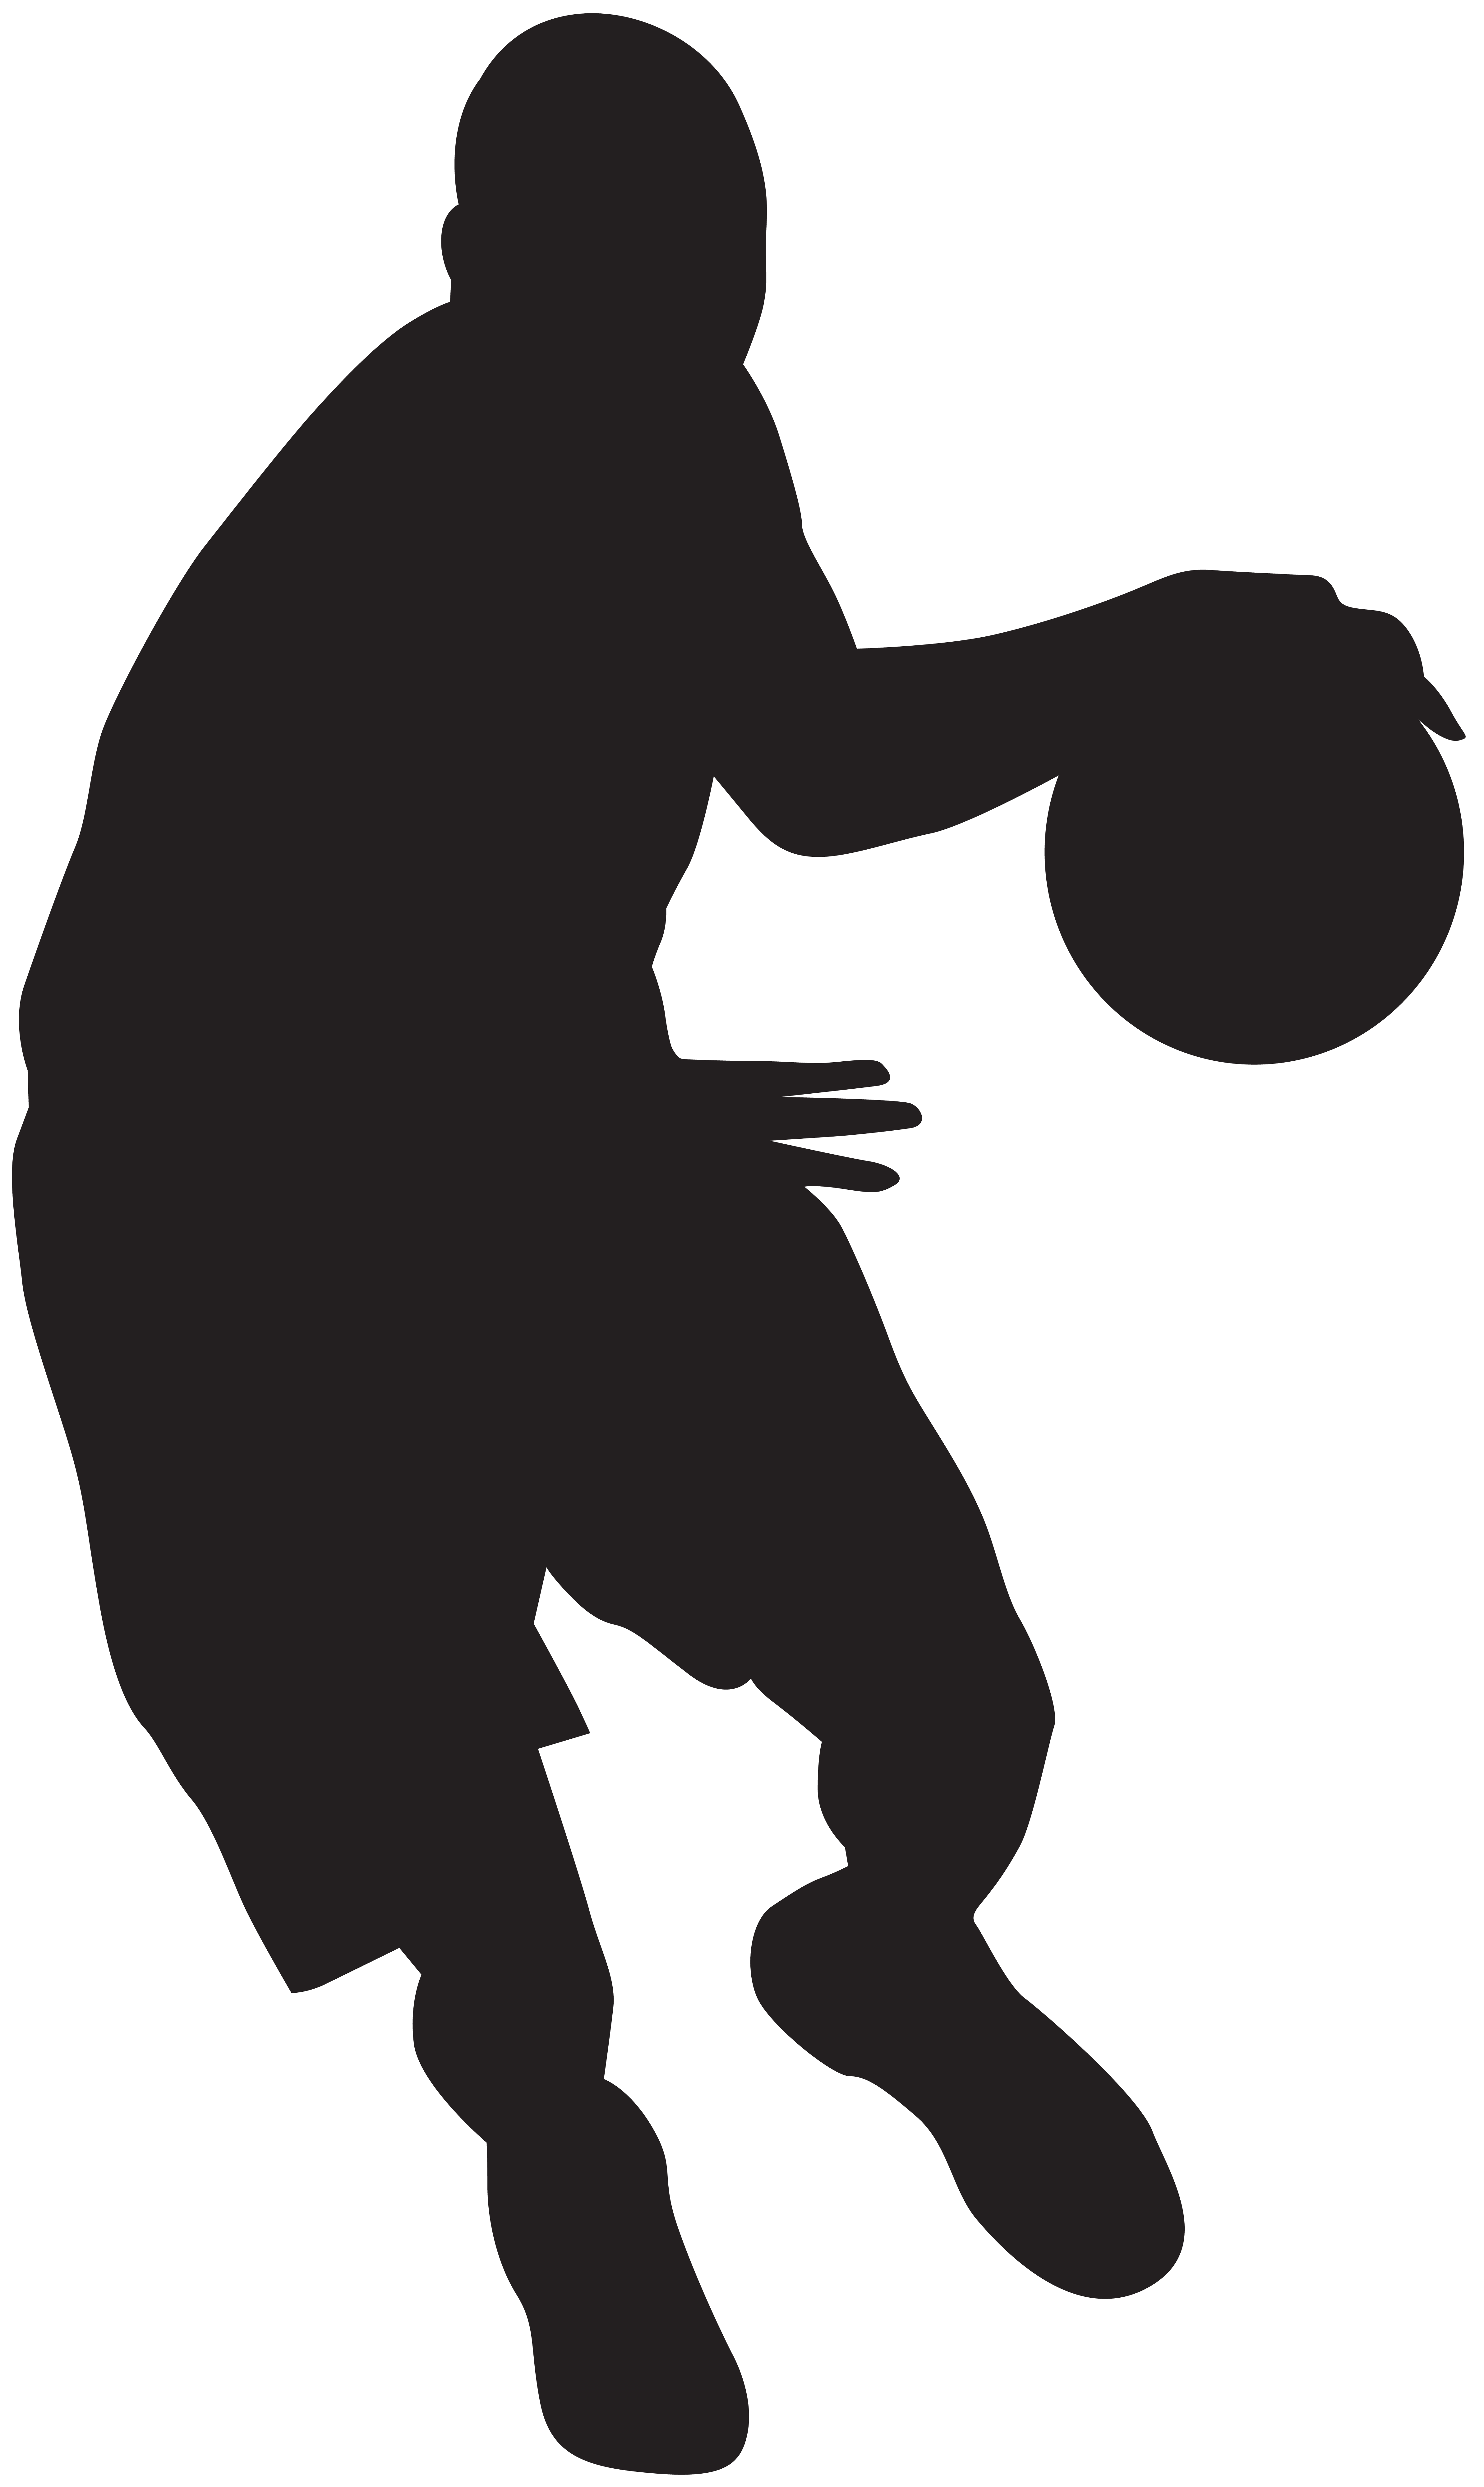 Basketball at getdrawings com. Handcuff clipart silhouette